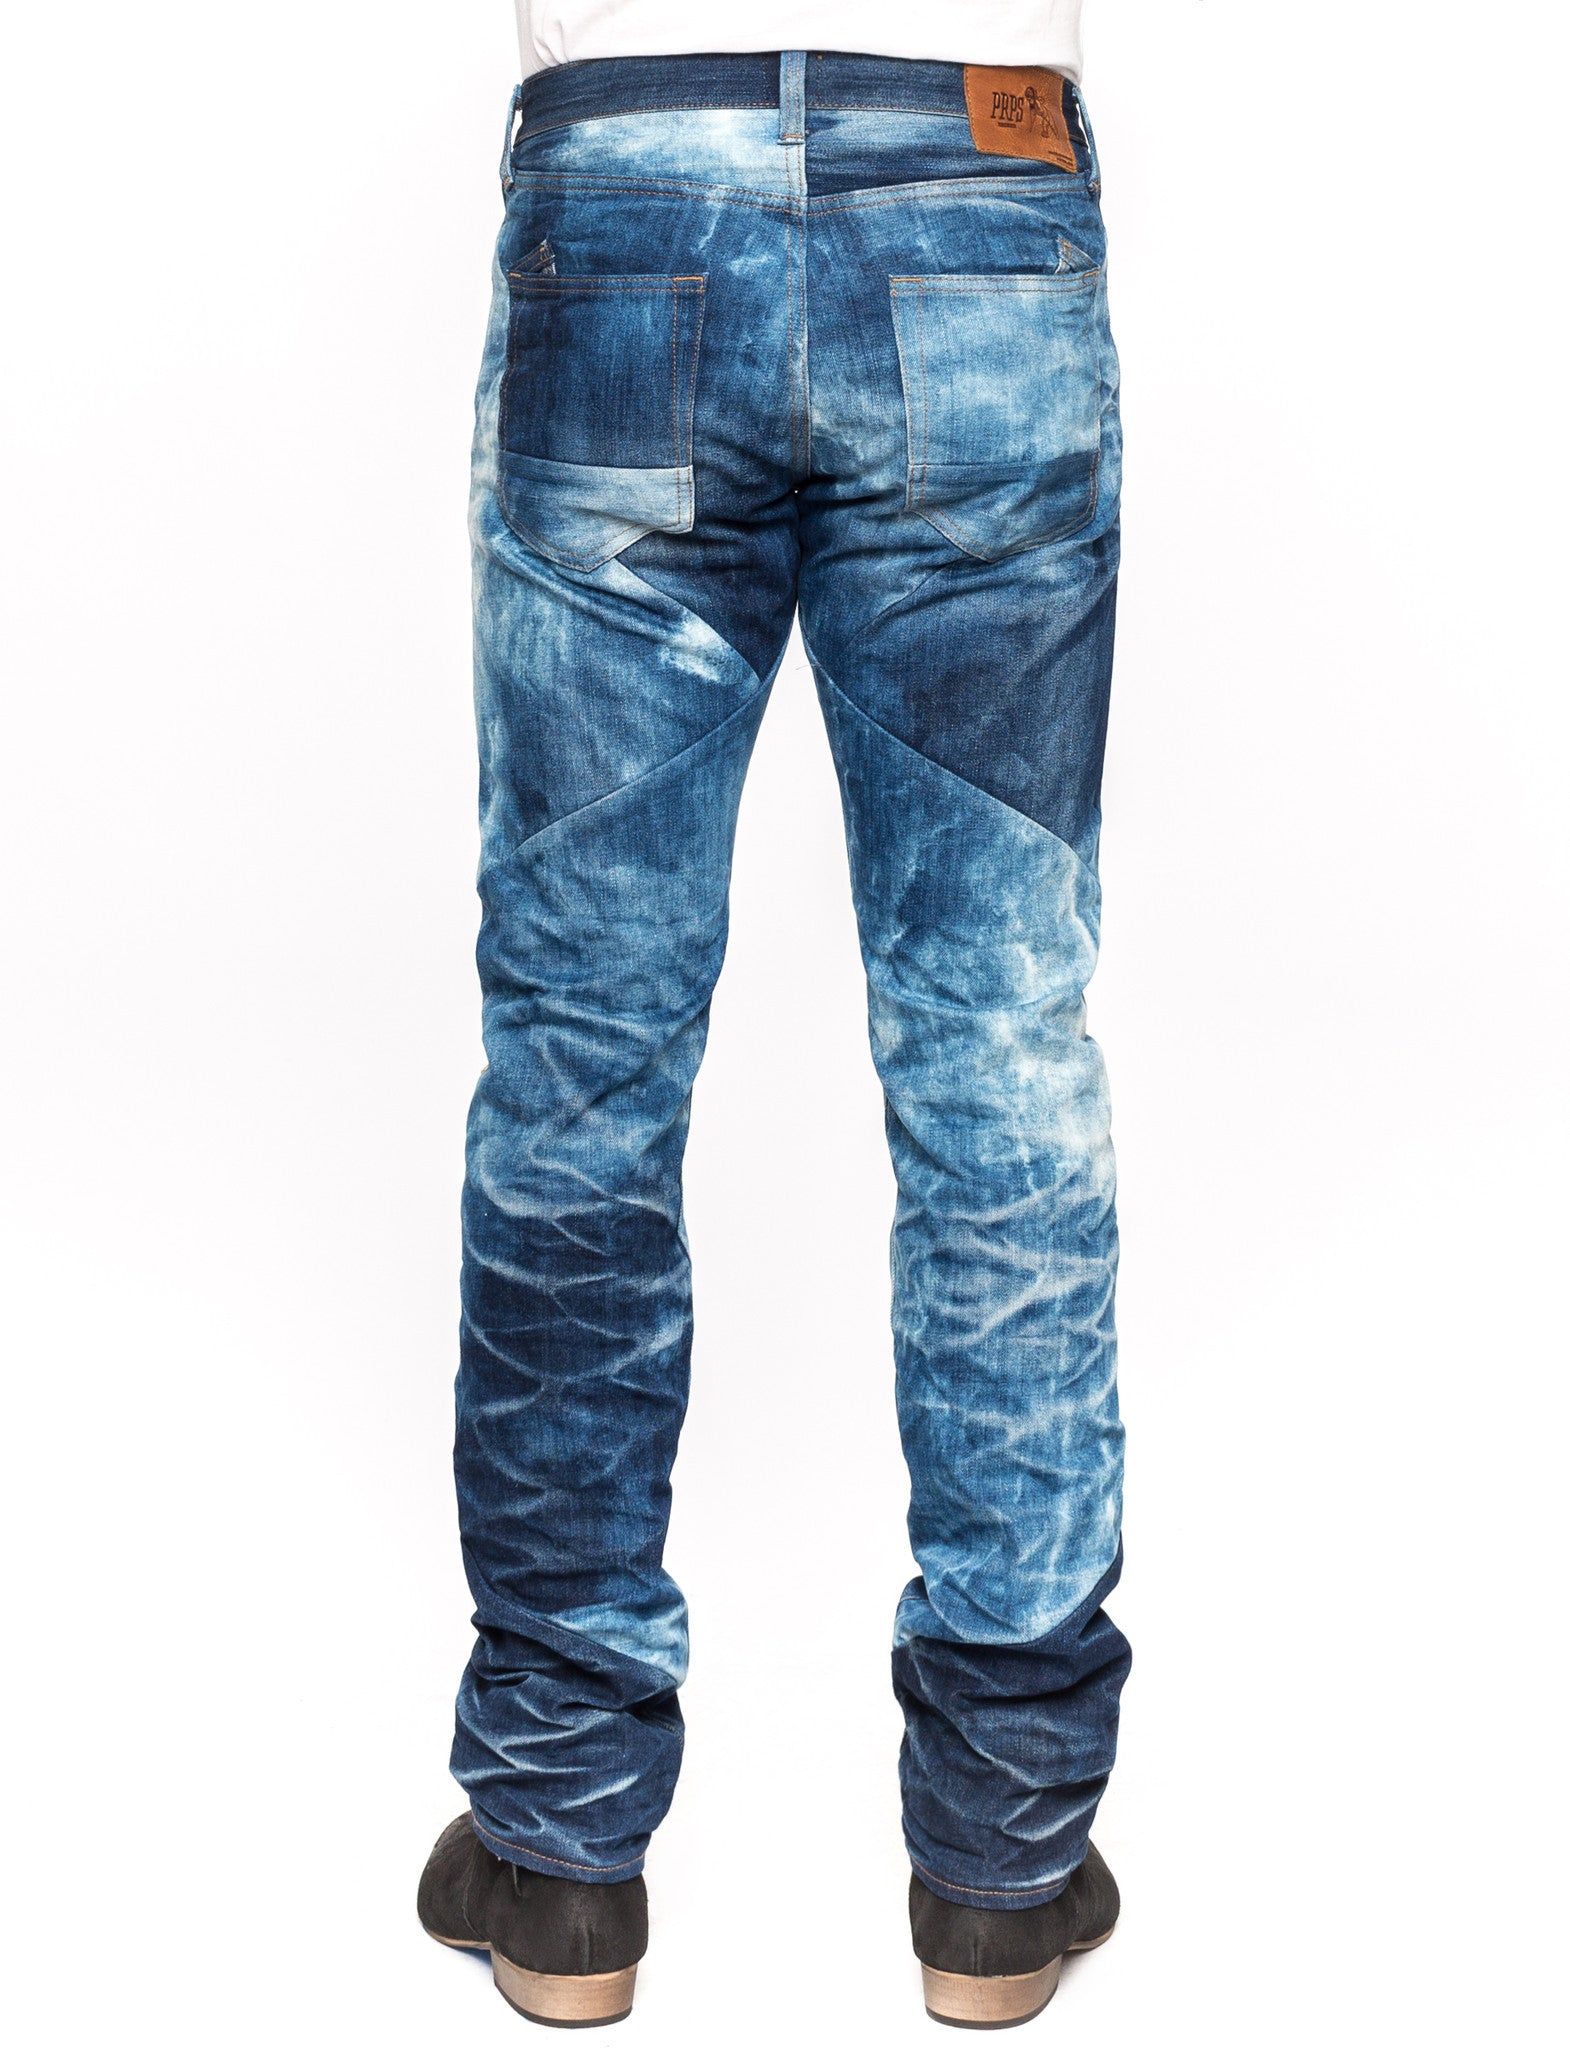 Barracuda - Rom - Jeans - Prps